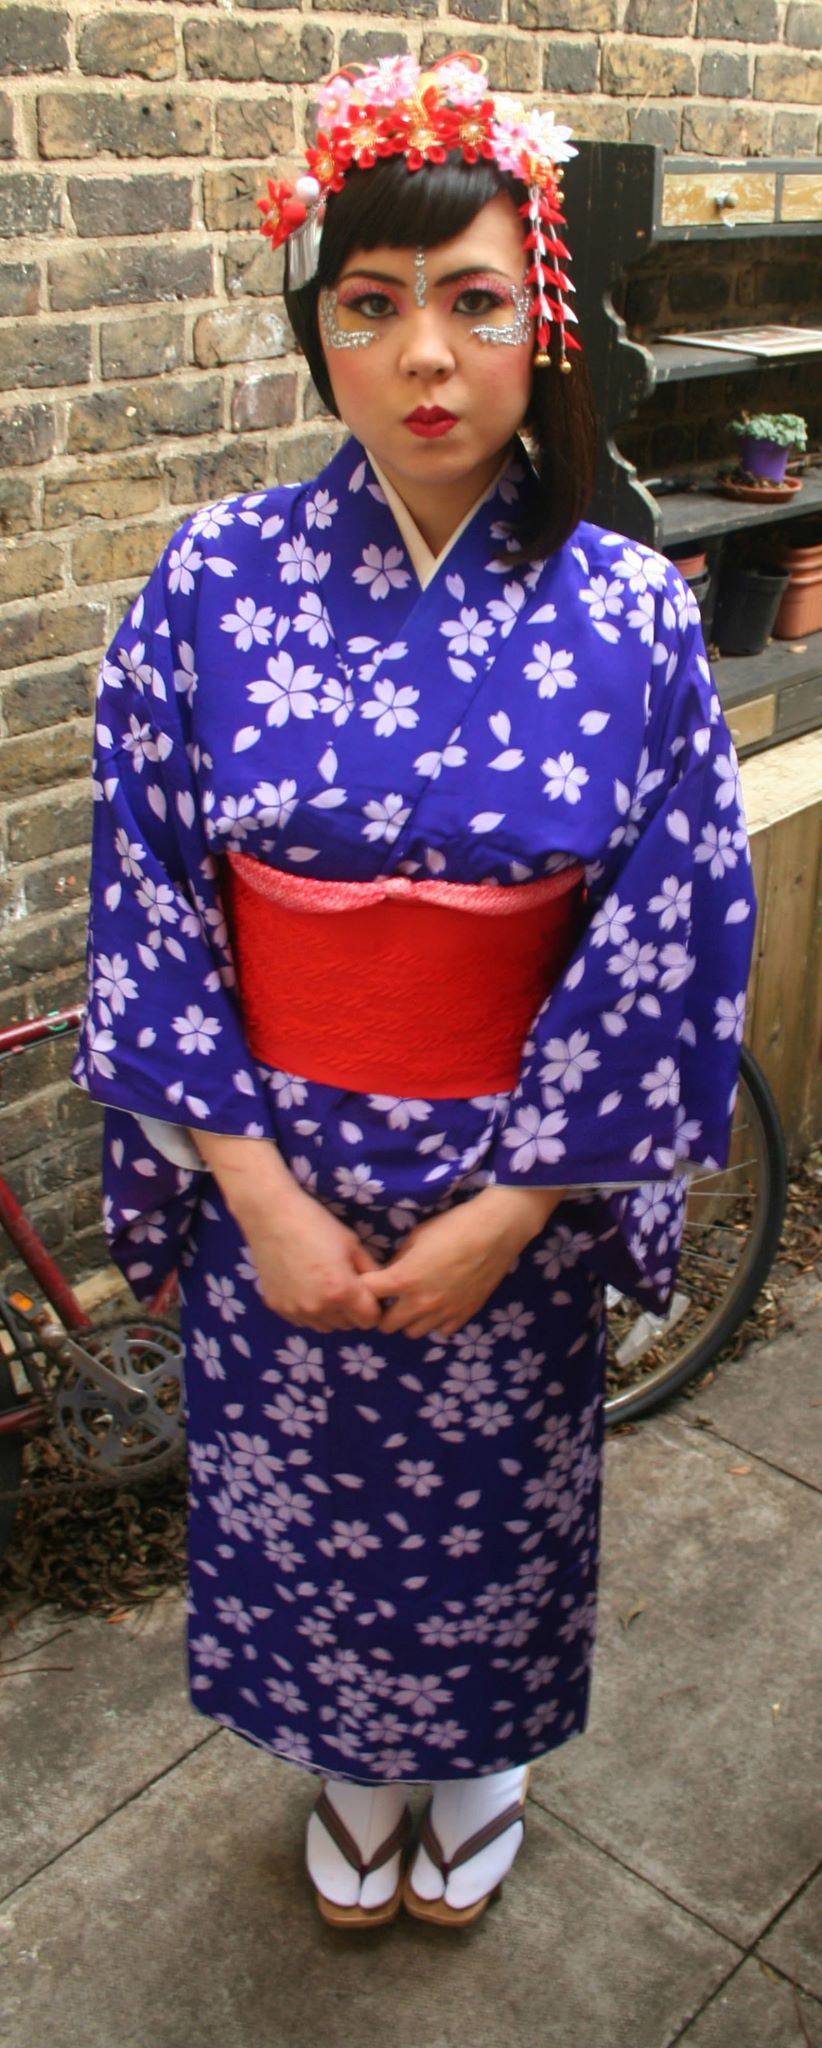 Our Japanese geisha model